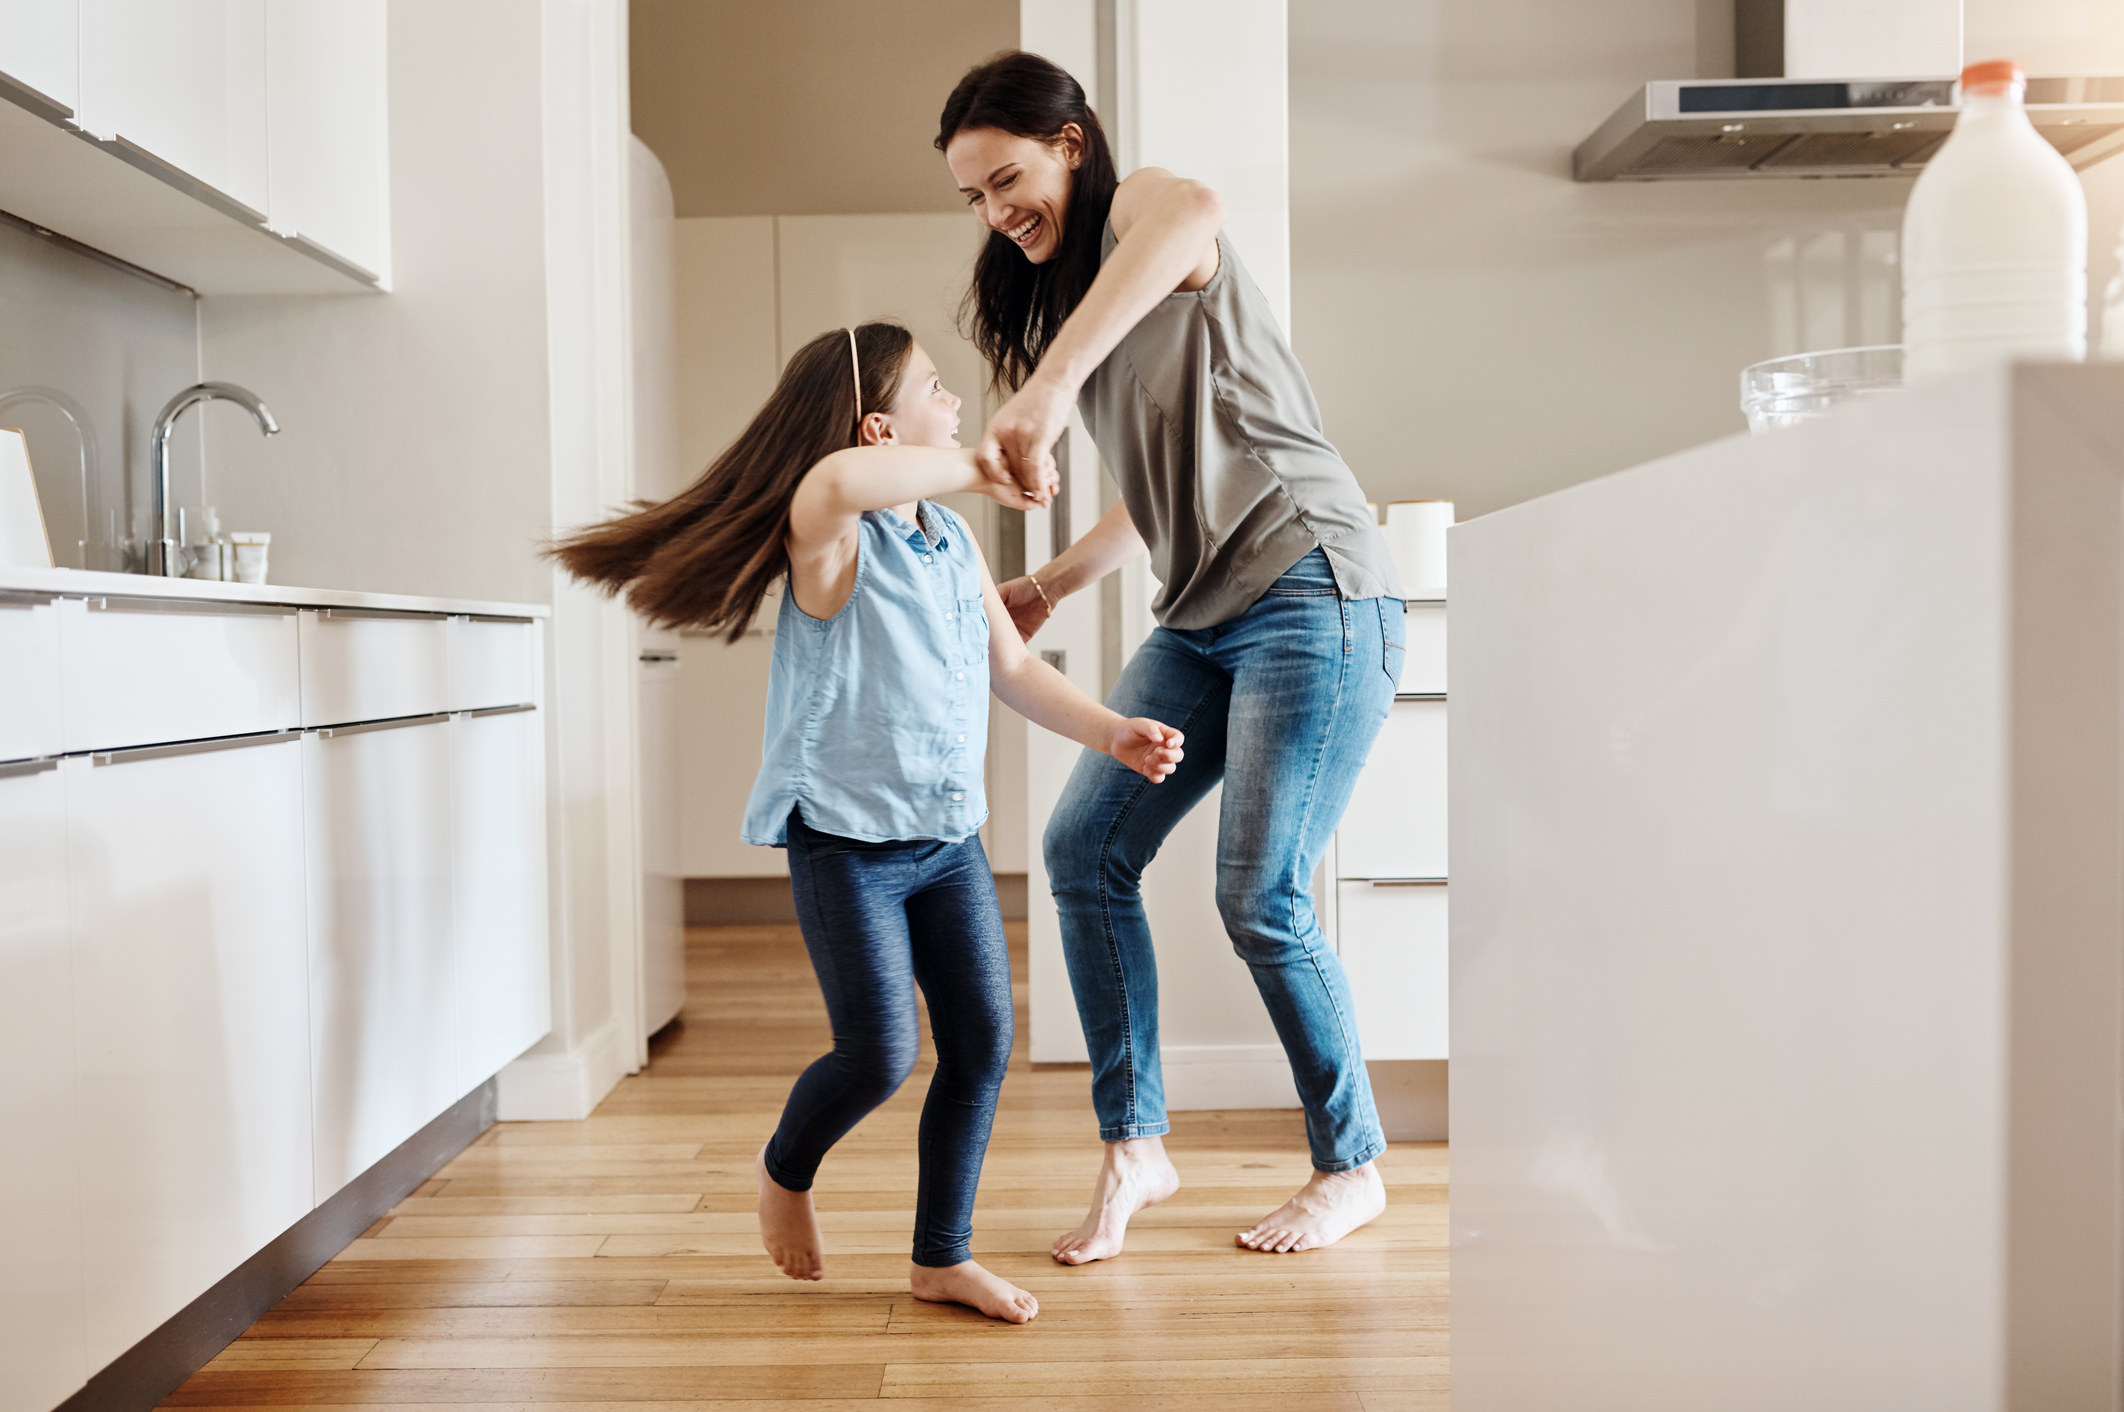 A mom dances with her daughter